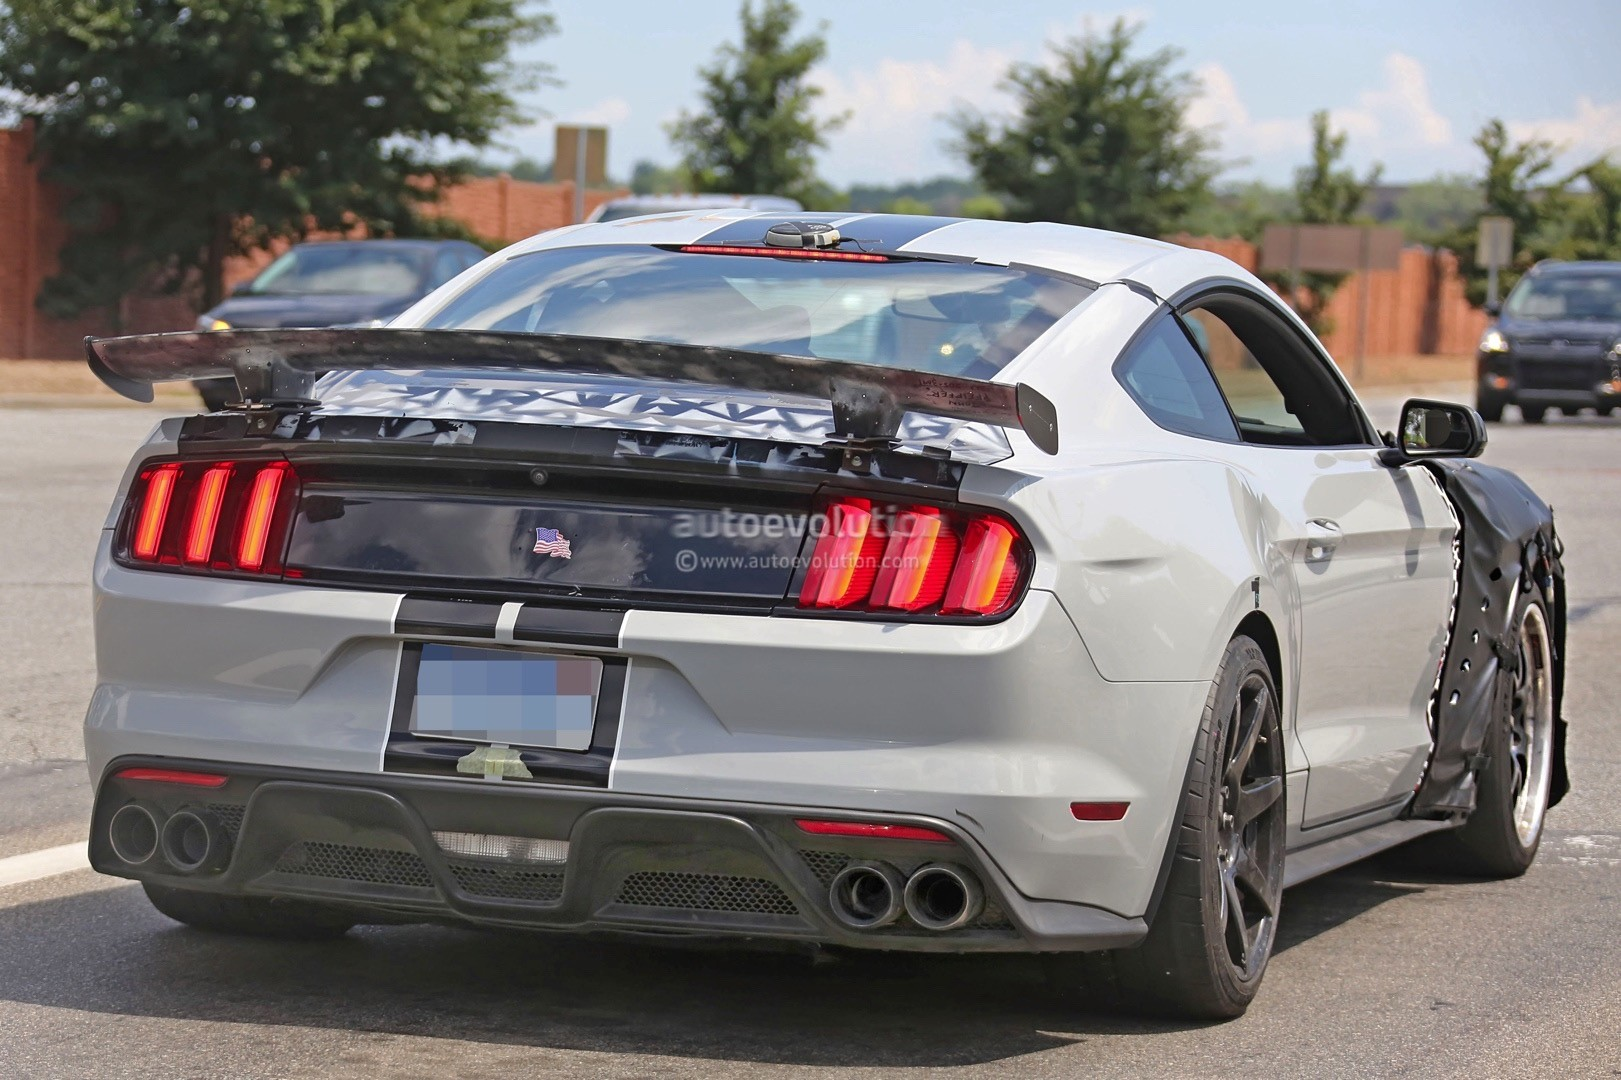 Could This Car Be the 2018 Ford Mustang Shelby GT500 or ...